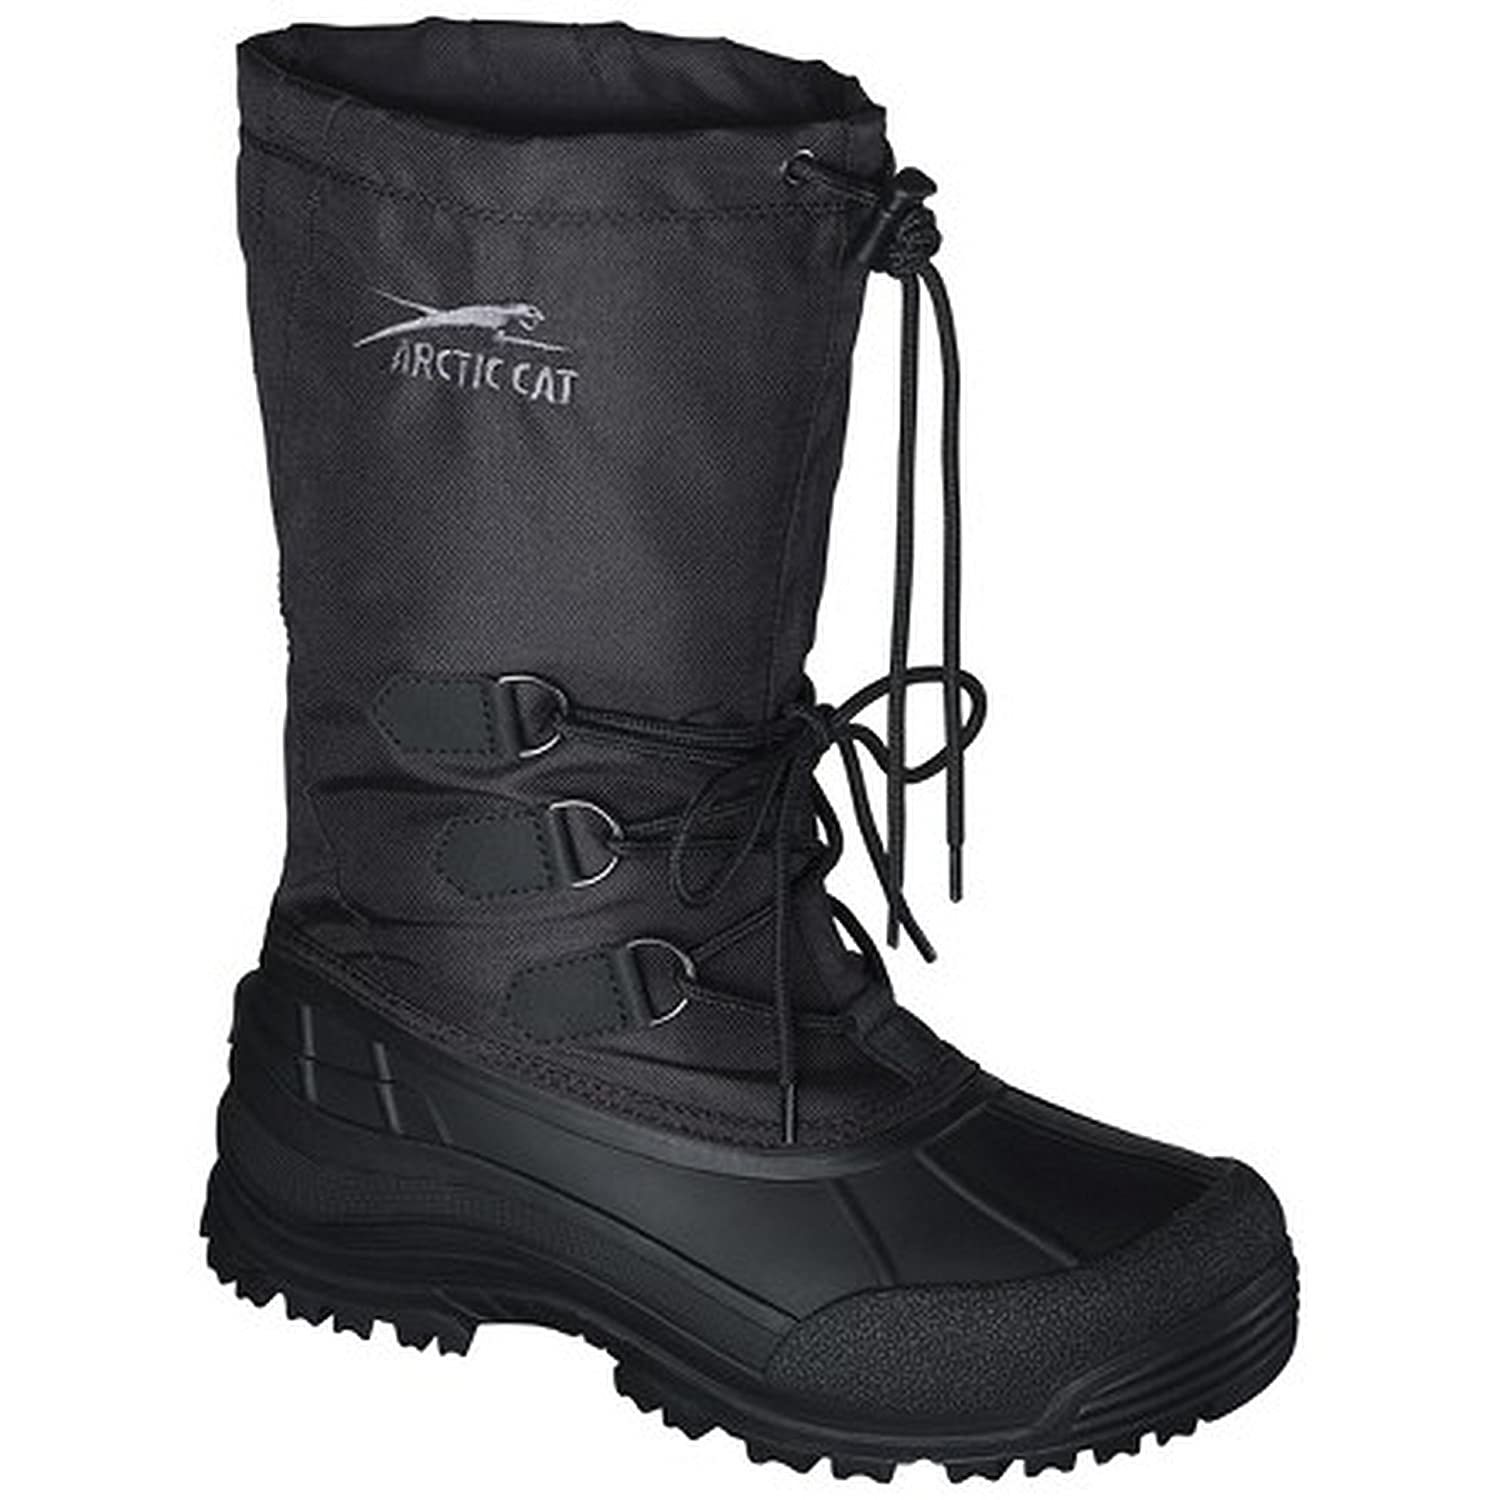 ARCTIC CAT Men's SHERBROOK Insulated Winter Boots Black 240599RM